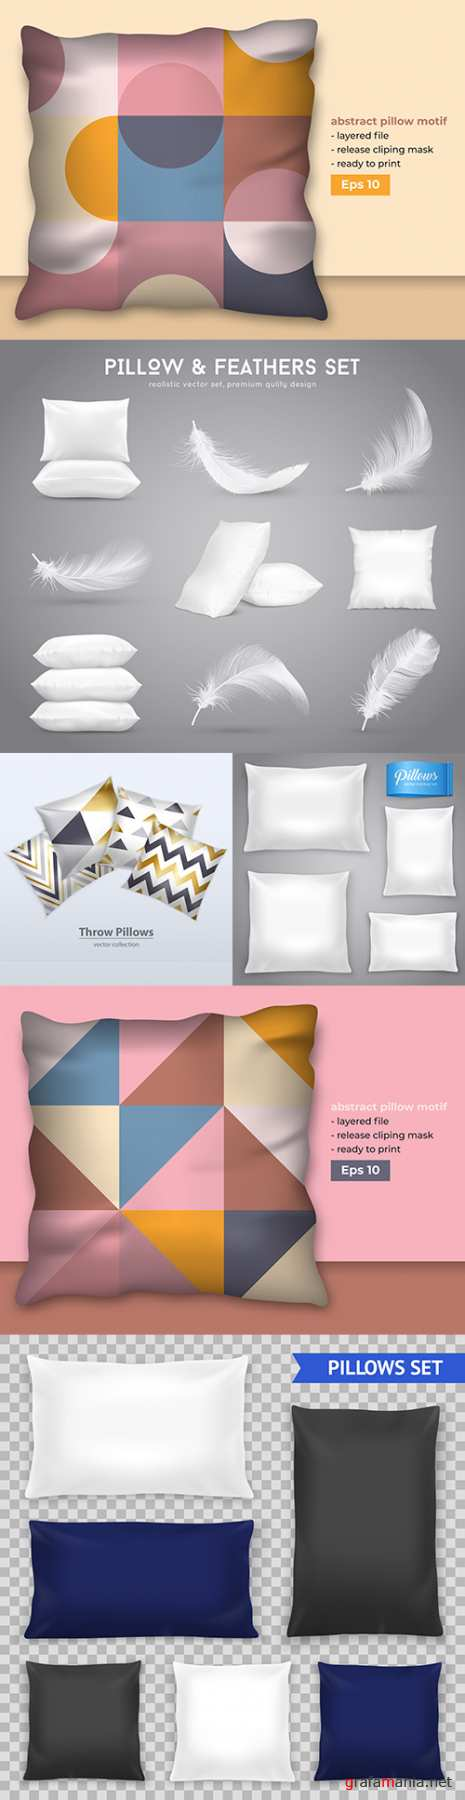 Pillow and feathers realistic templates decorative pattern